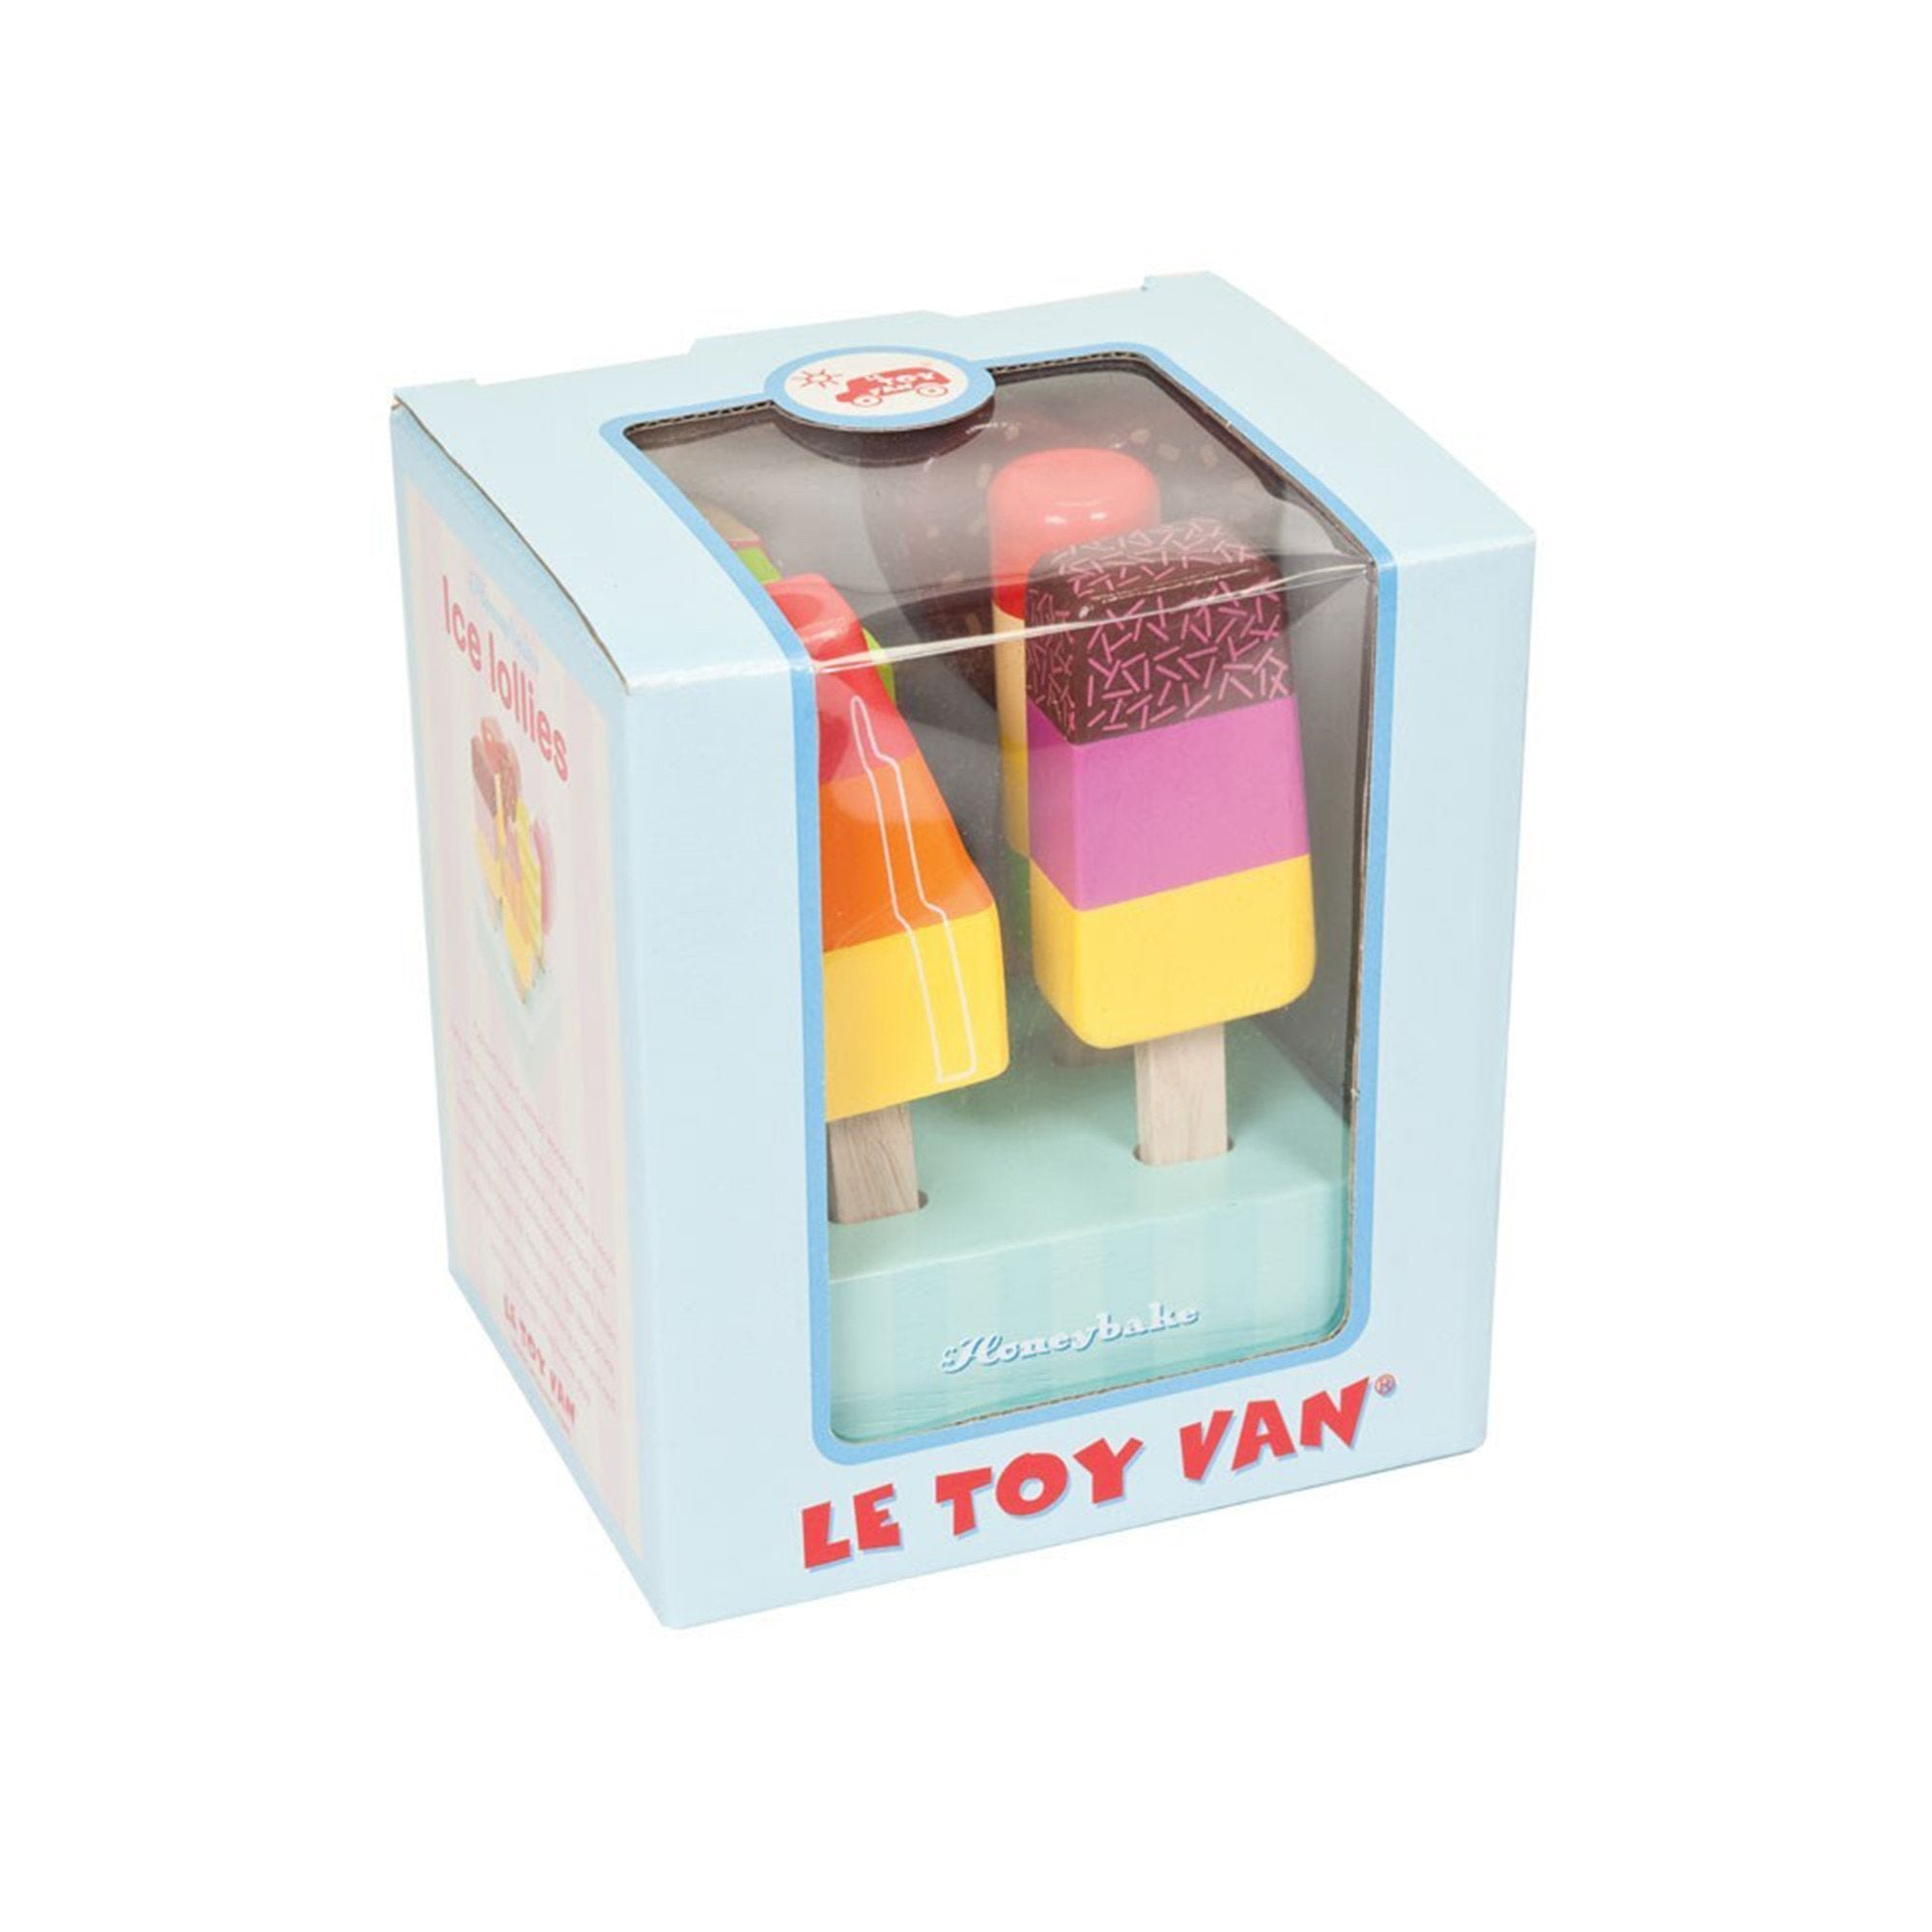 Le Toy Van Ice Lollies Icy poles Le Toy Van Toy Kitchens & Play Food at Little Earth Nest Eco Shop